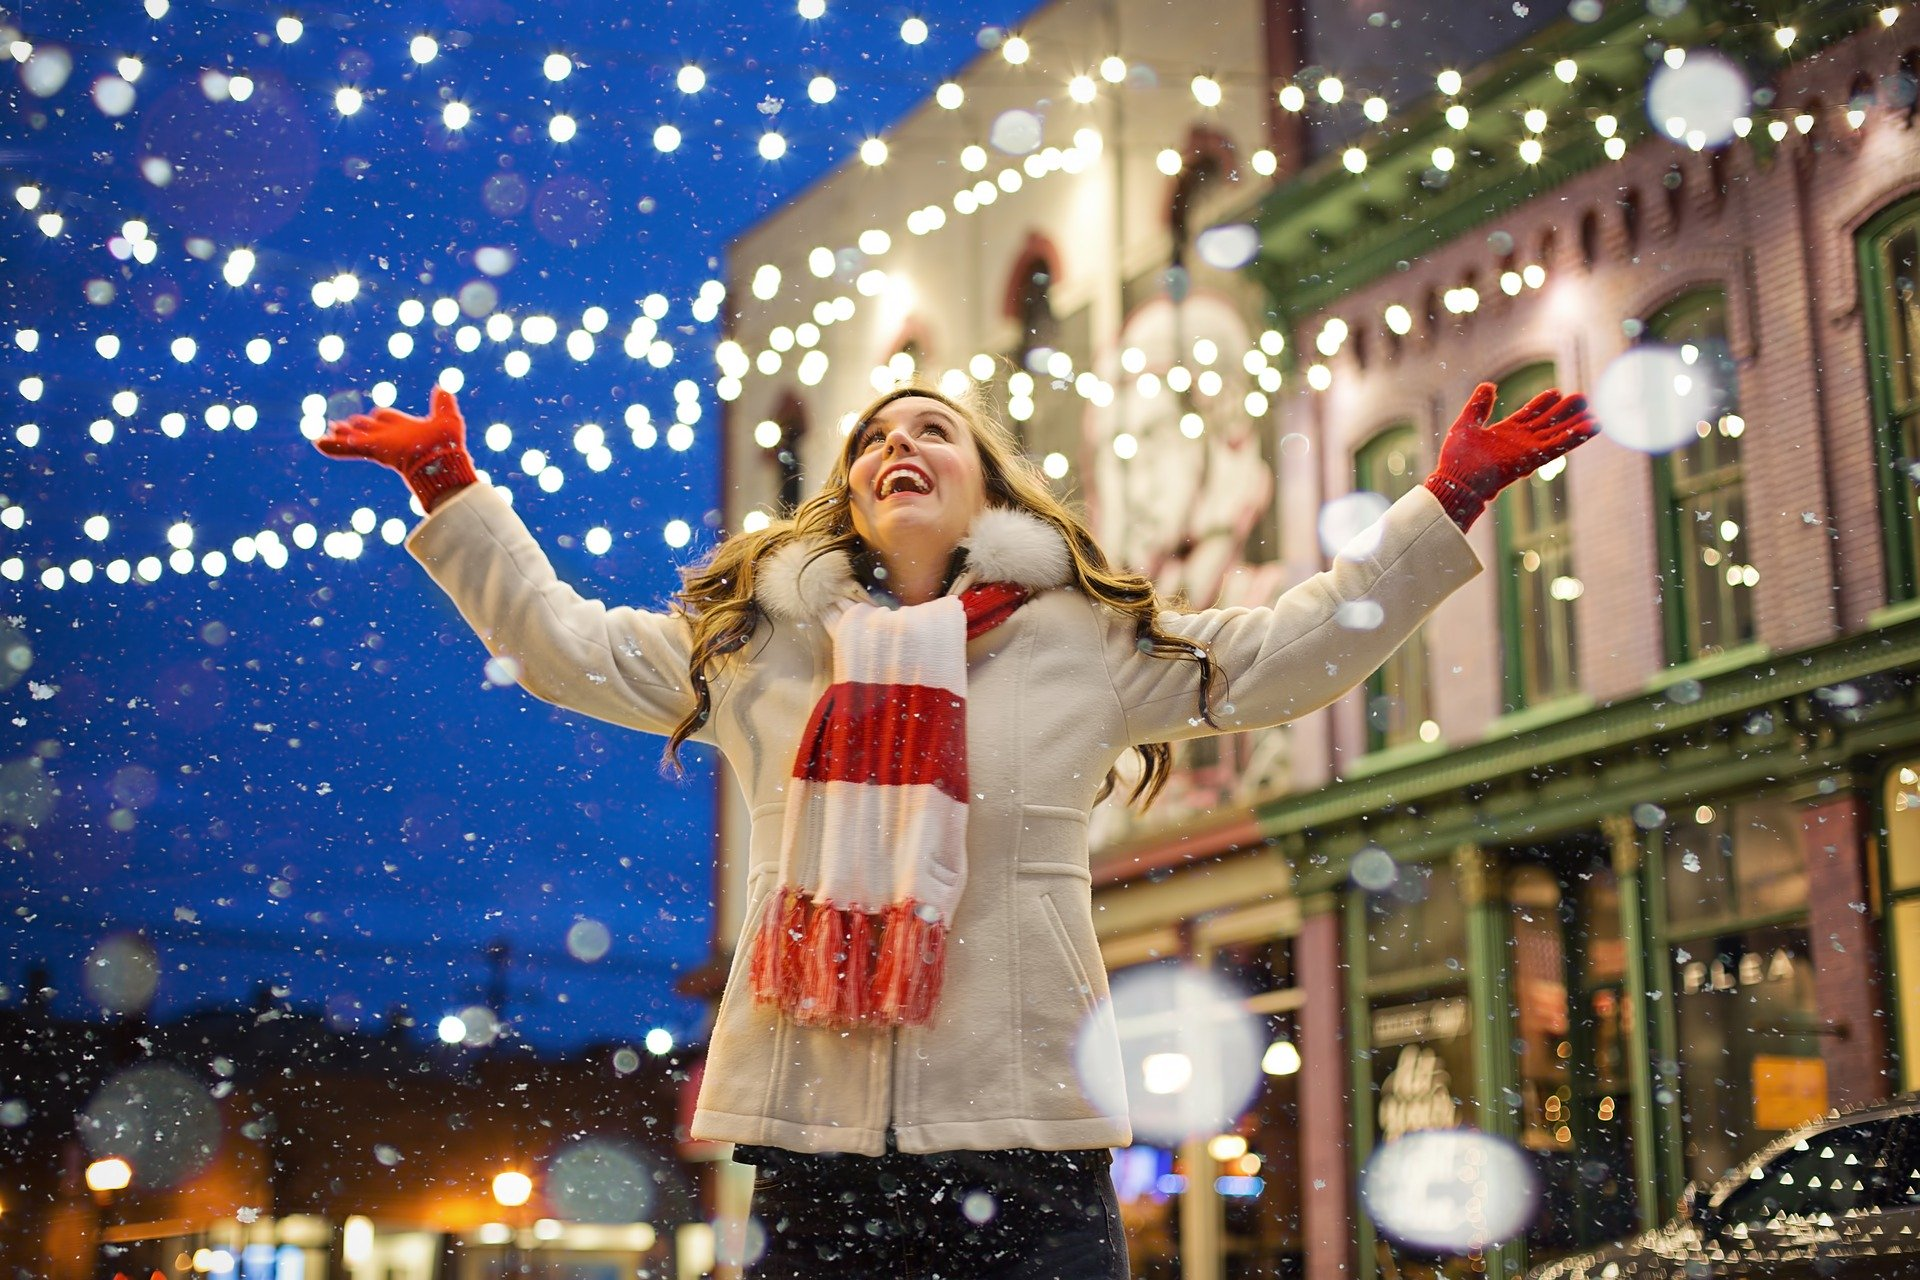 7 Events and Activities You Can Plan for the Holidays